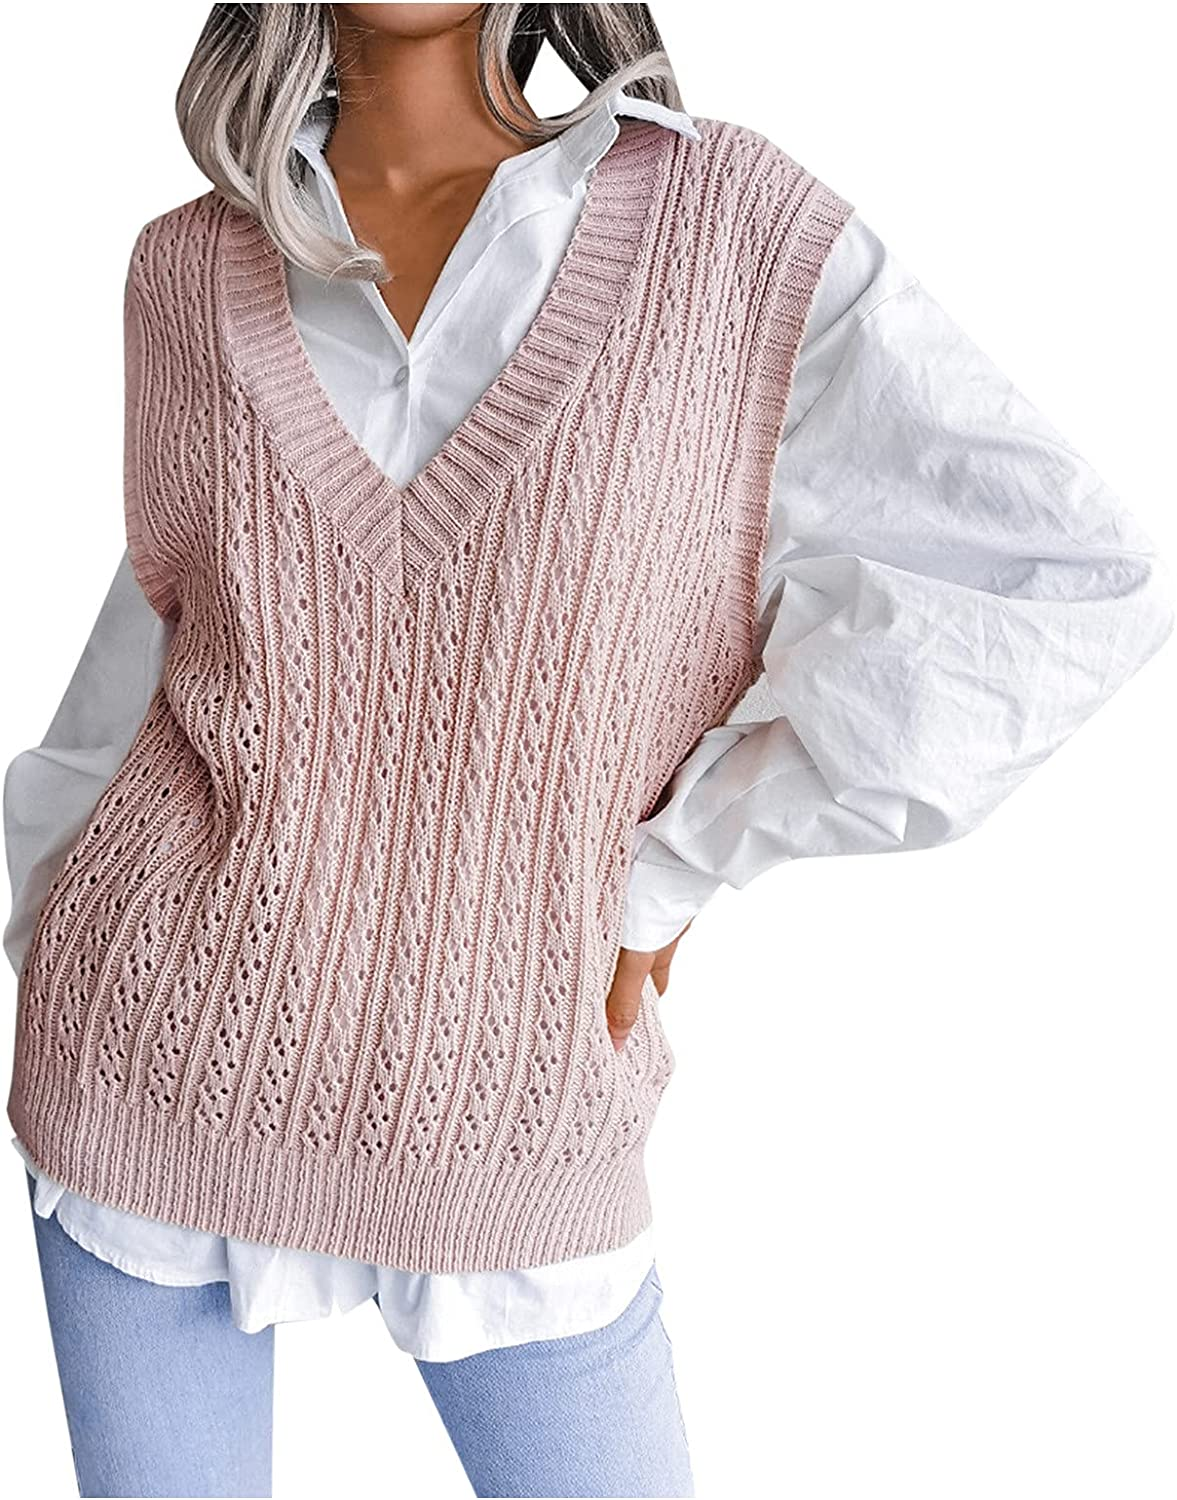 Women's Sweater Vest Oversized V Neck Sleeveless Sweaters Knitwear Soft Chunky Cable Knit Tunic Blouse Jumpers Tops